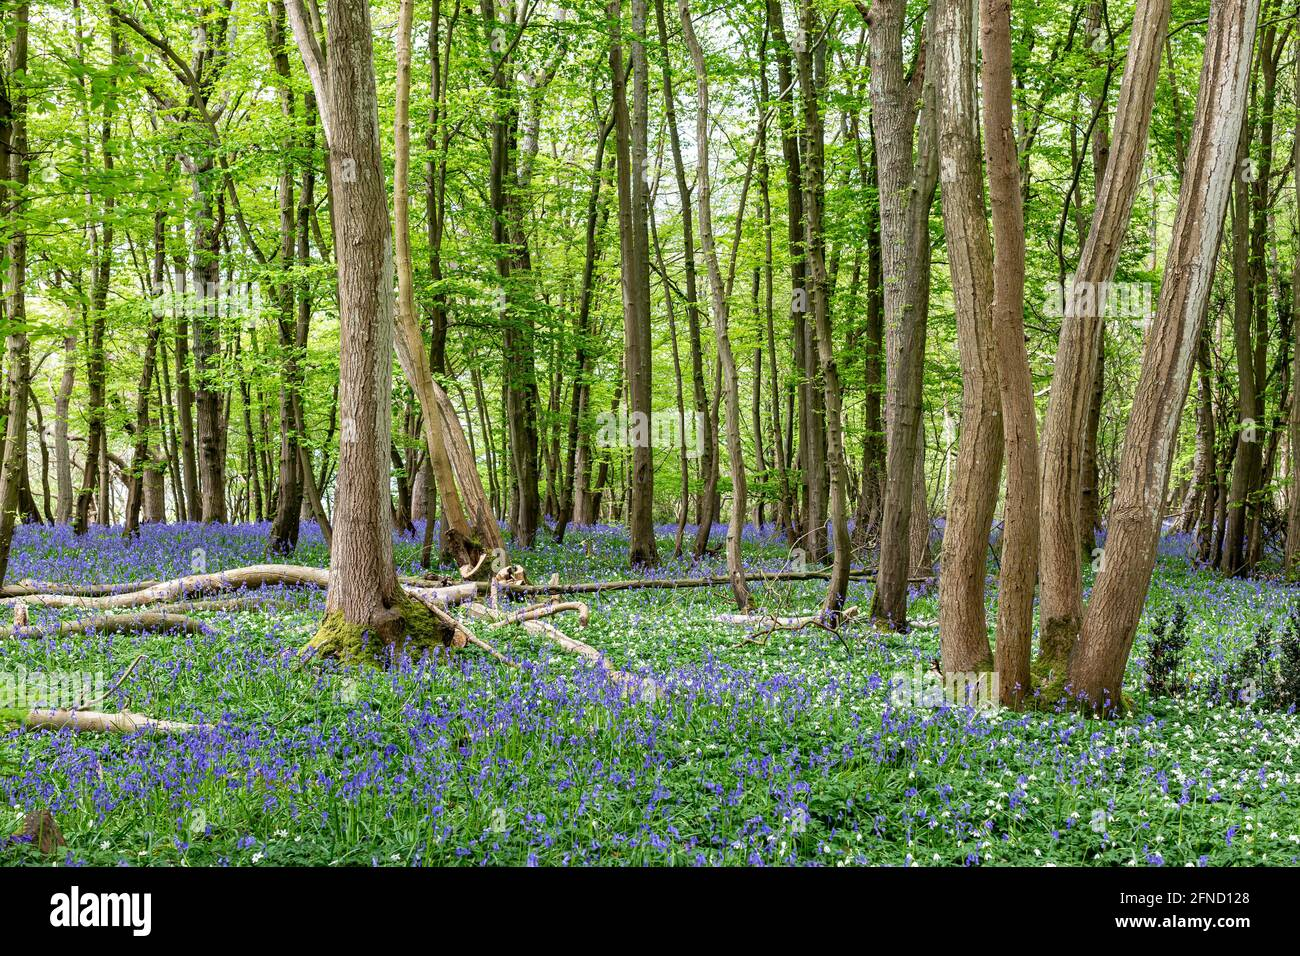 Wood Anemones and Bluebells in Sussex Woodland on a Spring Day Stock Photo